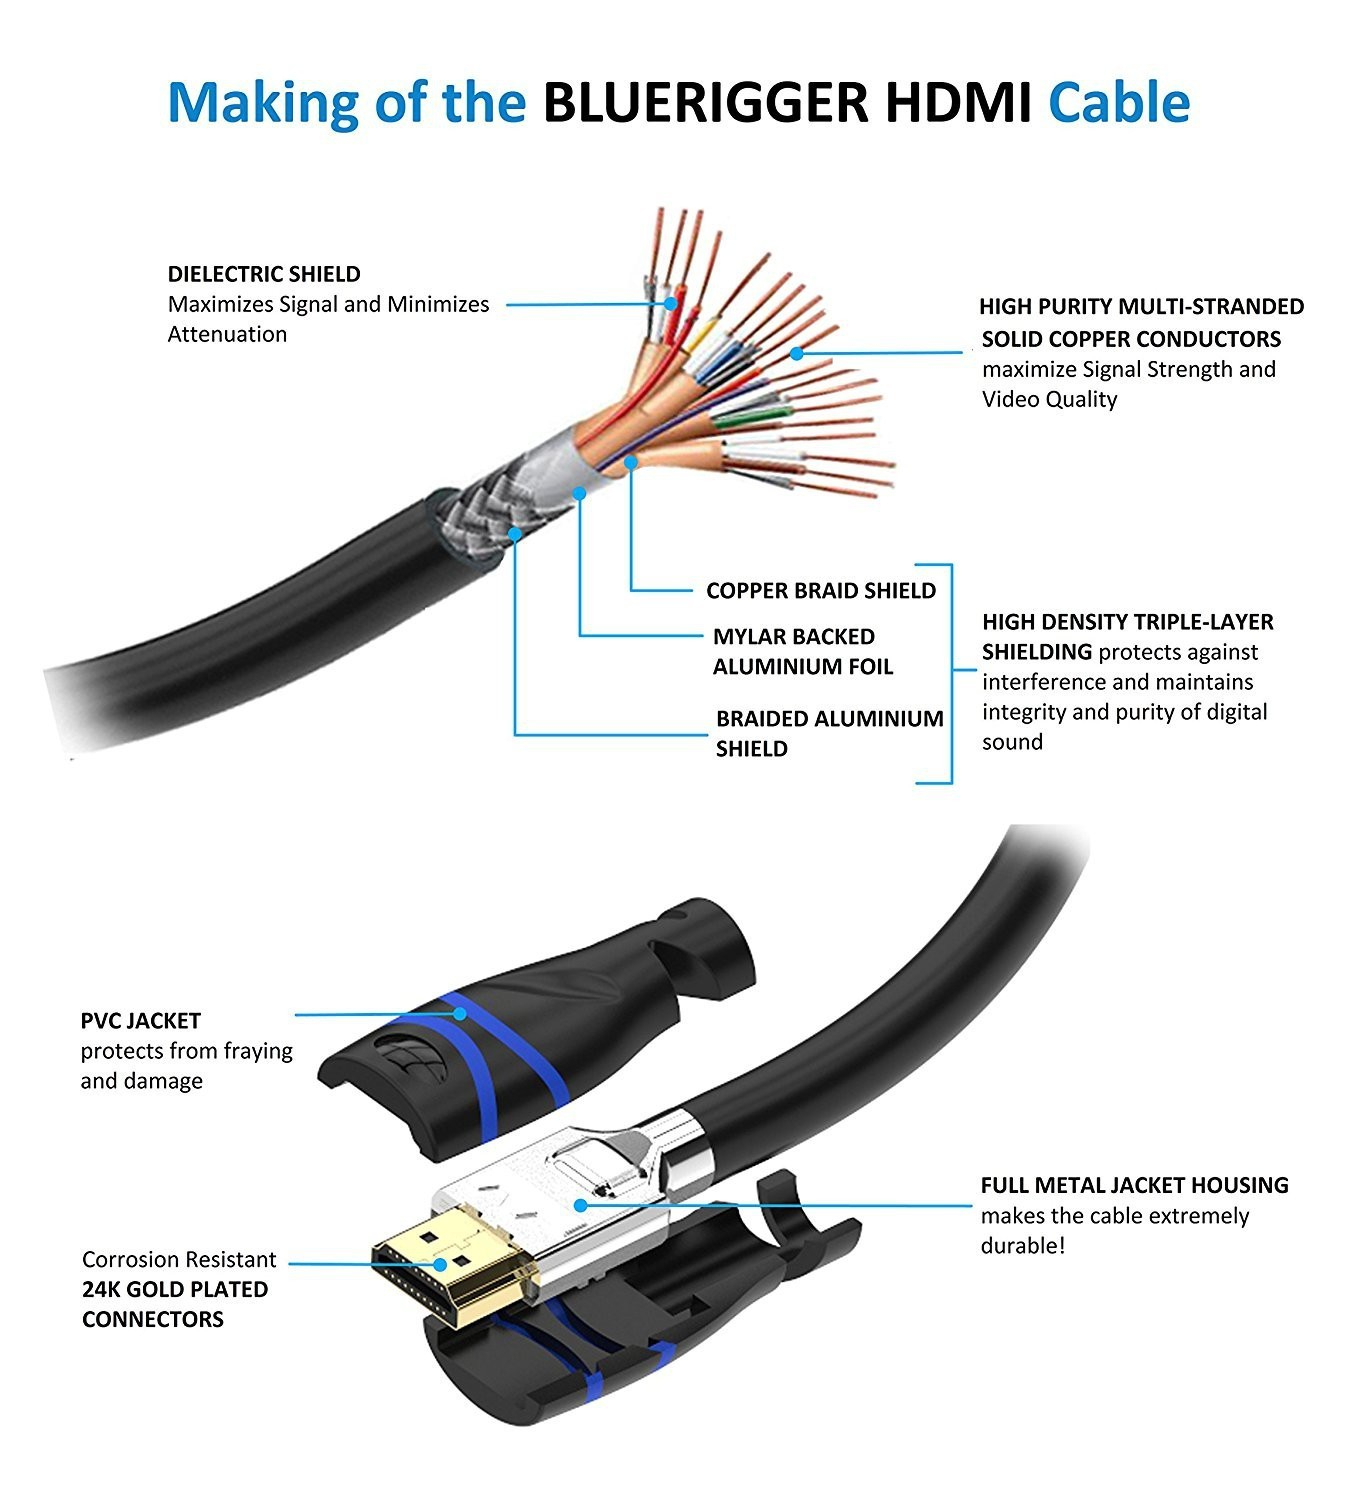 Mini Usb Cable Wiring Diagram   Wiring Library - Mini Usb Cable Wiring Diagram